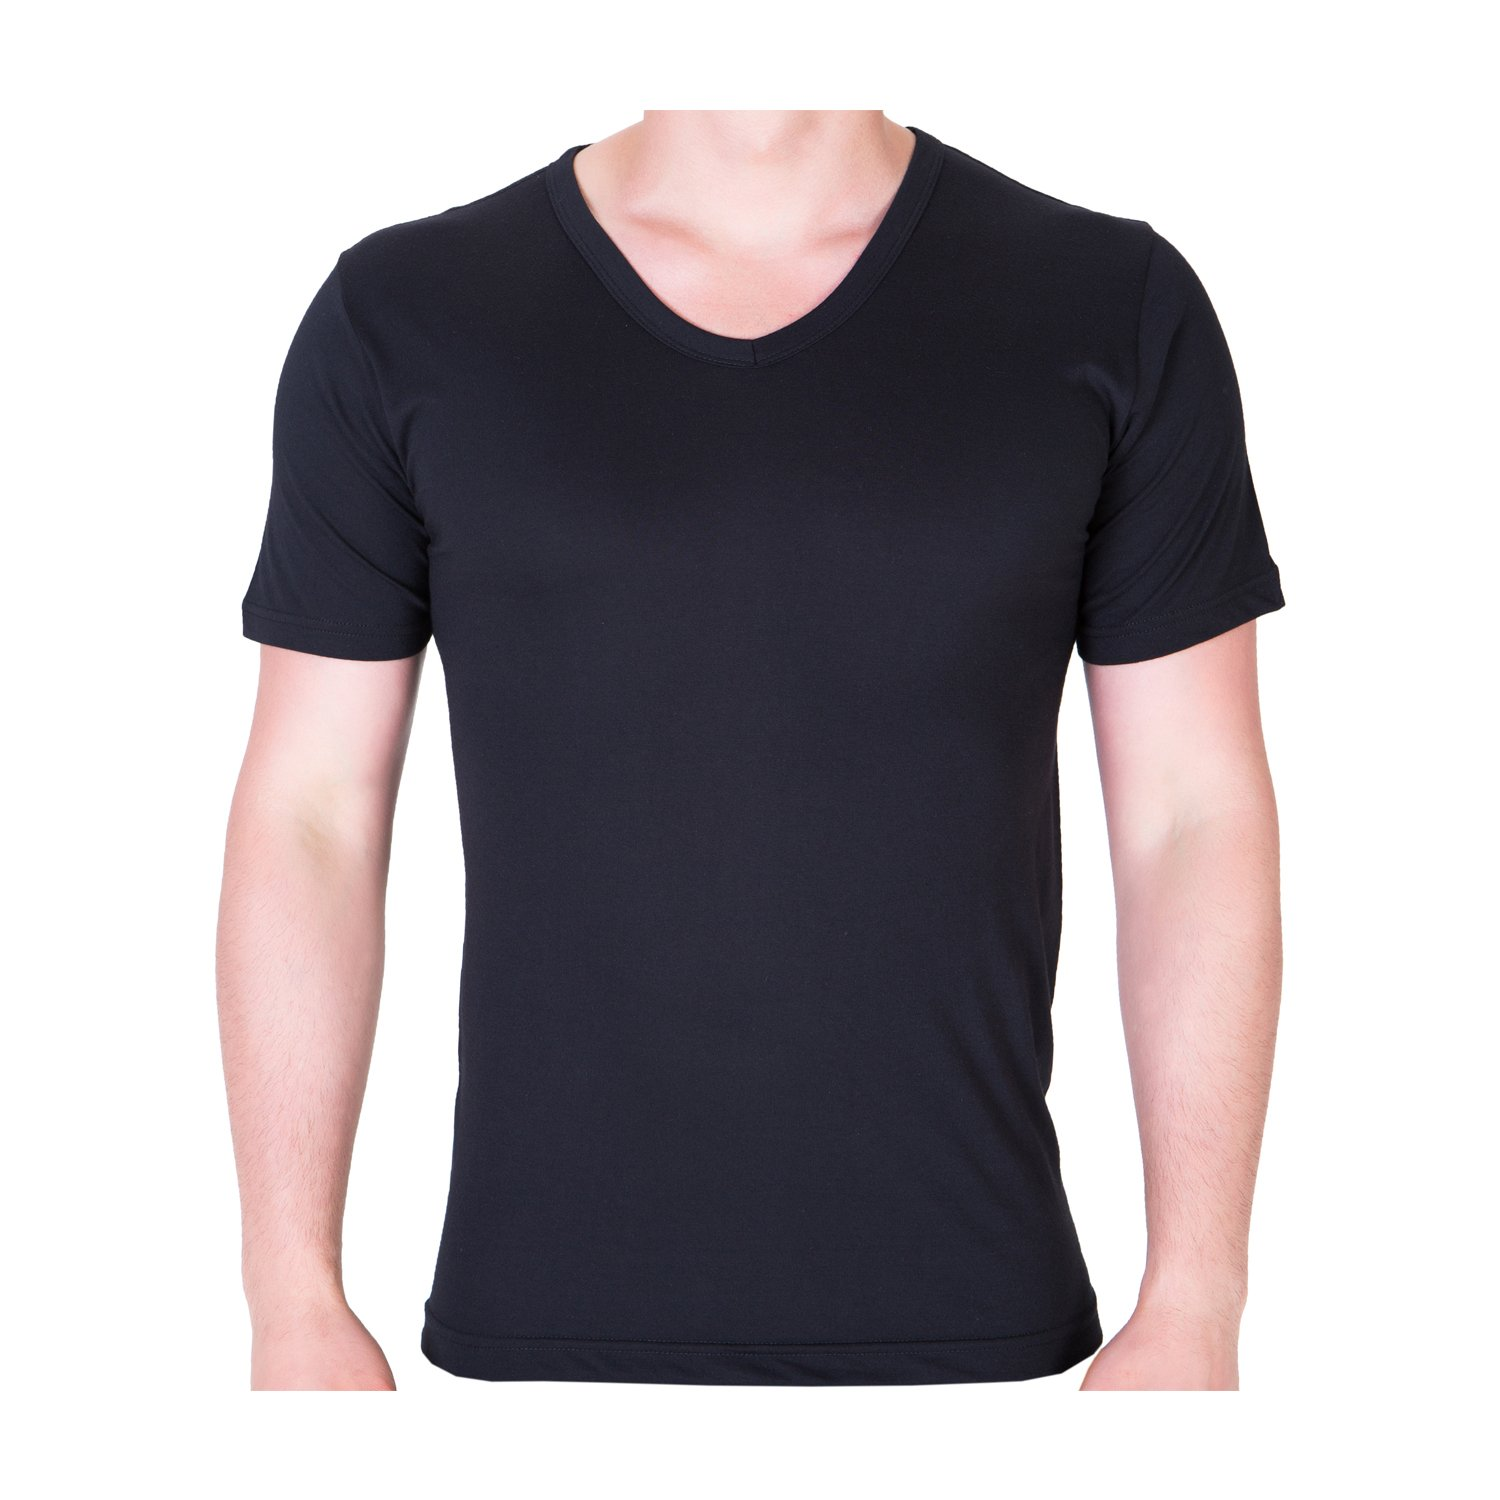 af9fa9b7d8 MODAL AND COMBED COTTON: Men's shirts don't need to be scratchy and  uncomfortable. These ultra-soft tag free undershirts are constructed from  the most ...